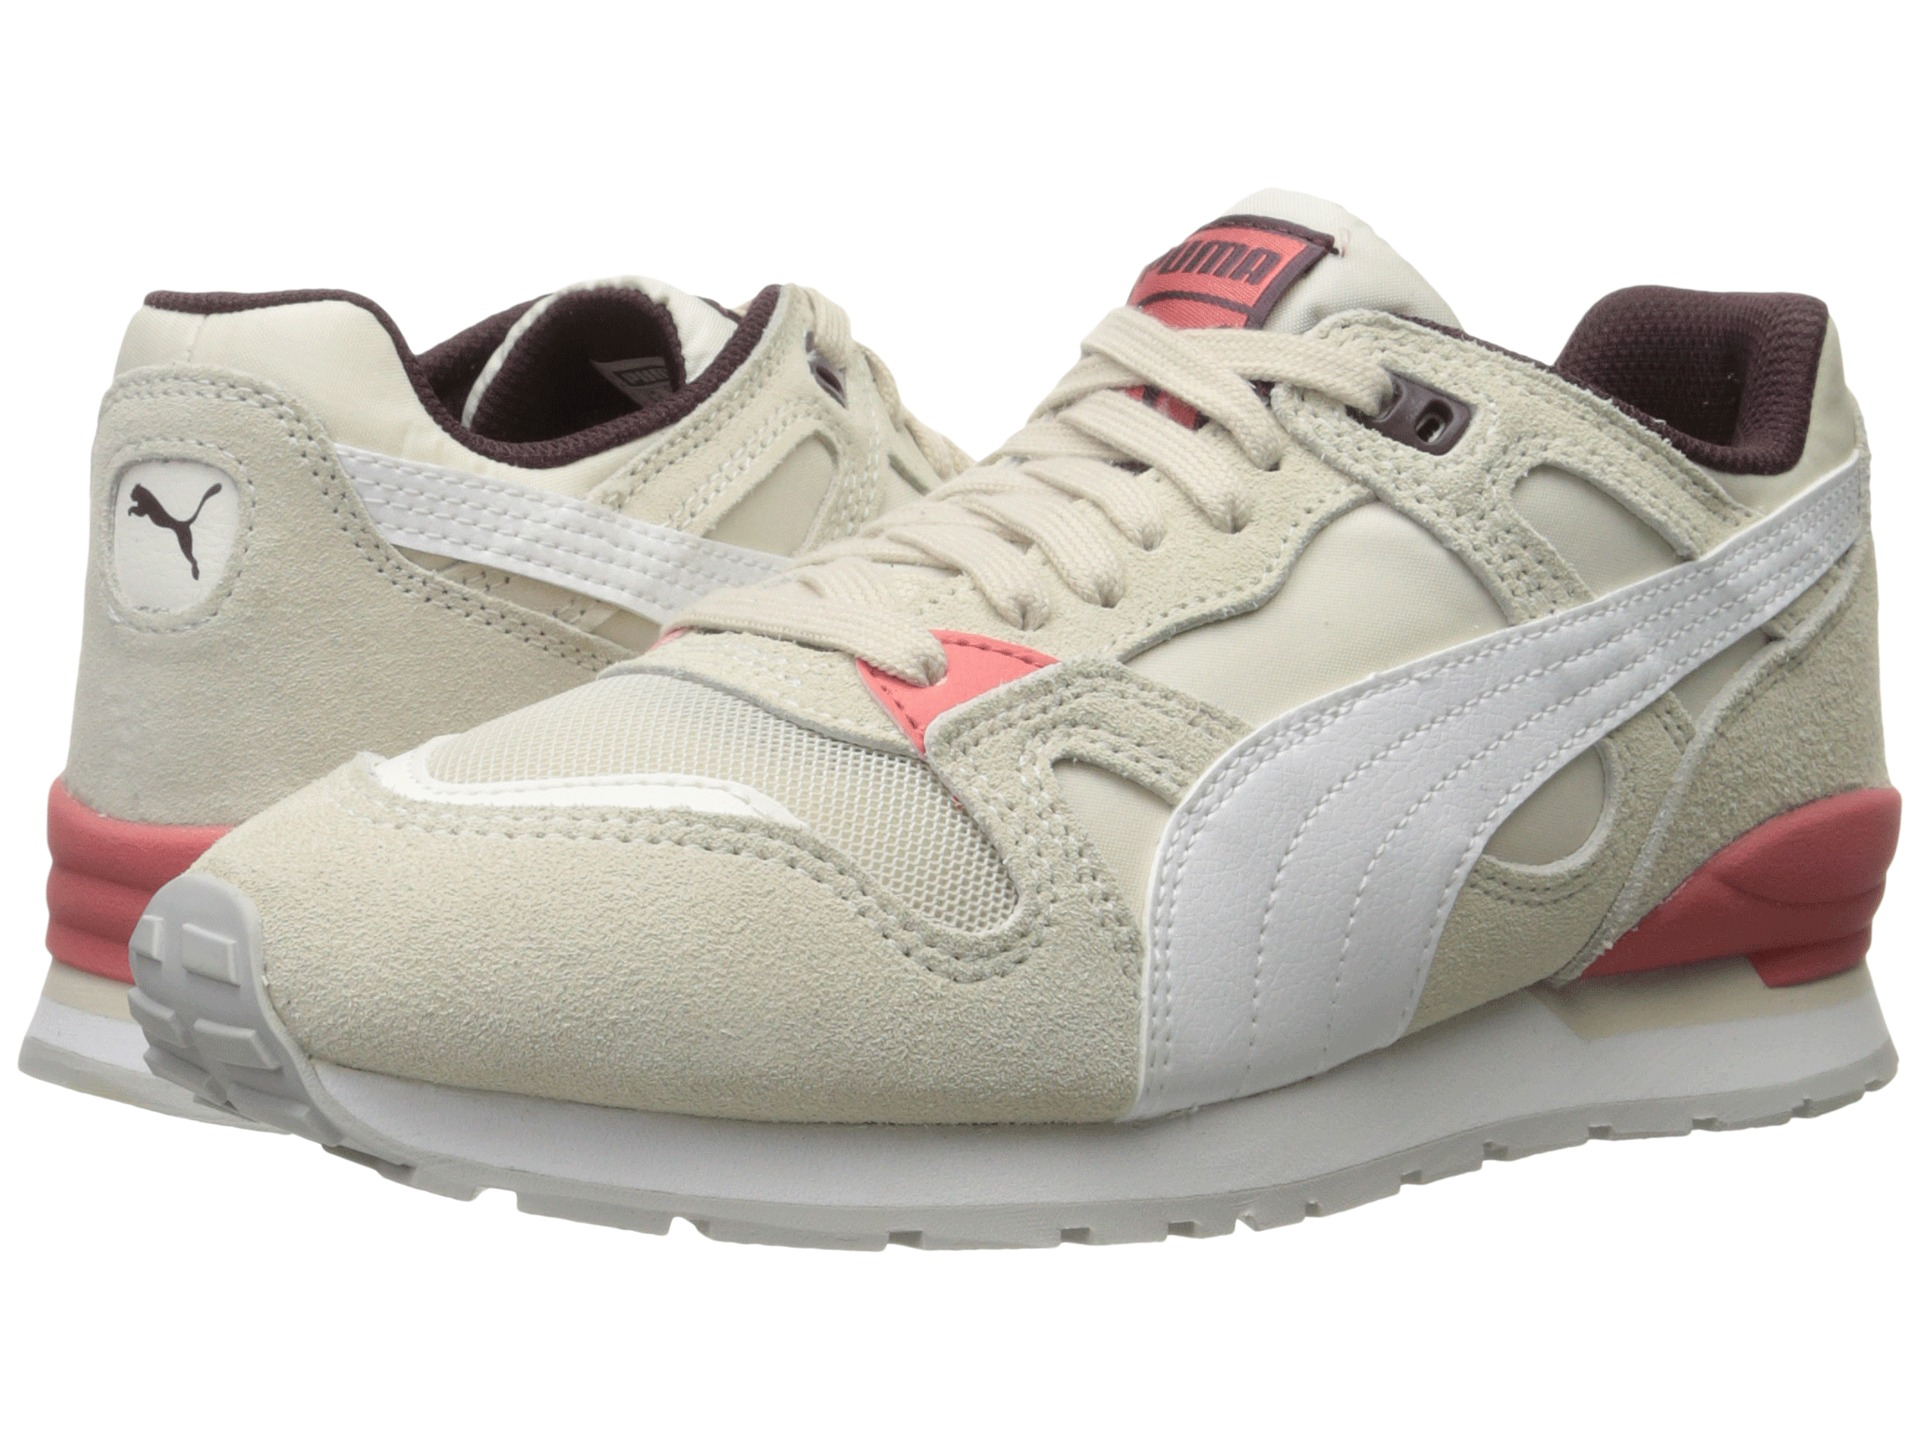 puma sneakers zappos